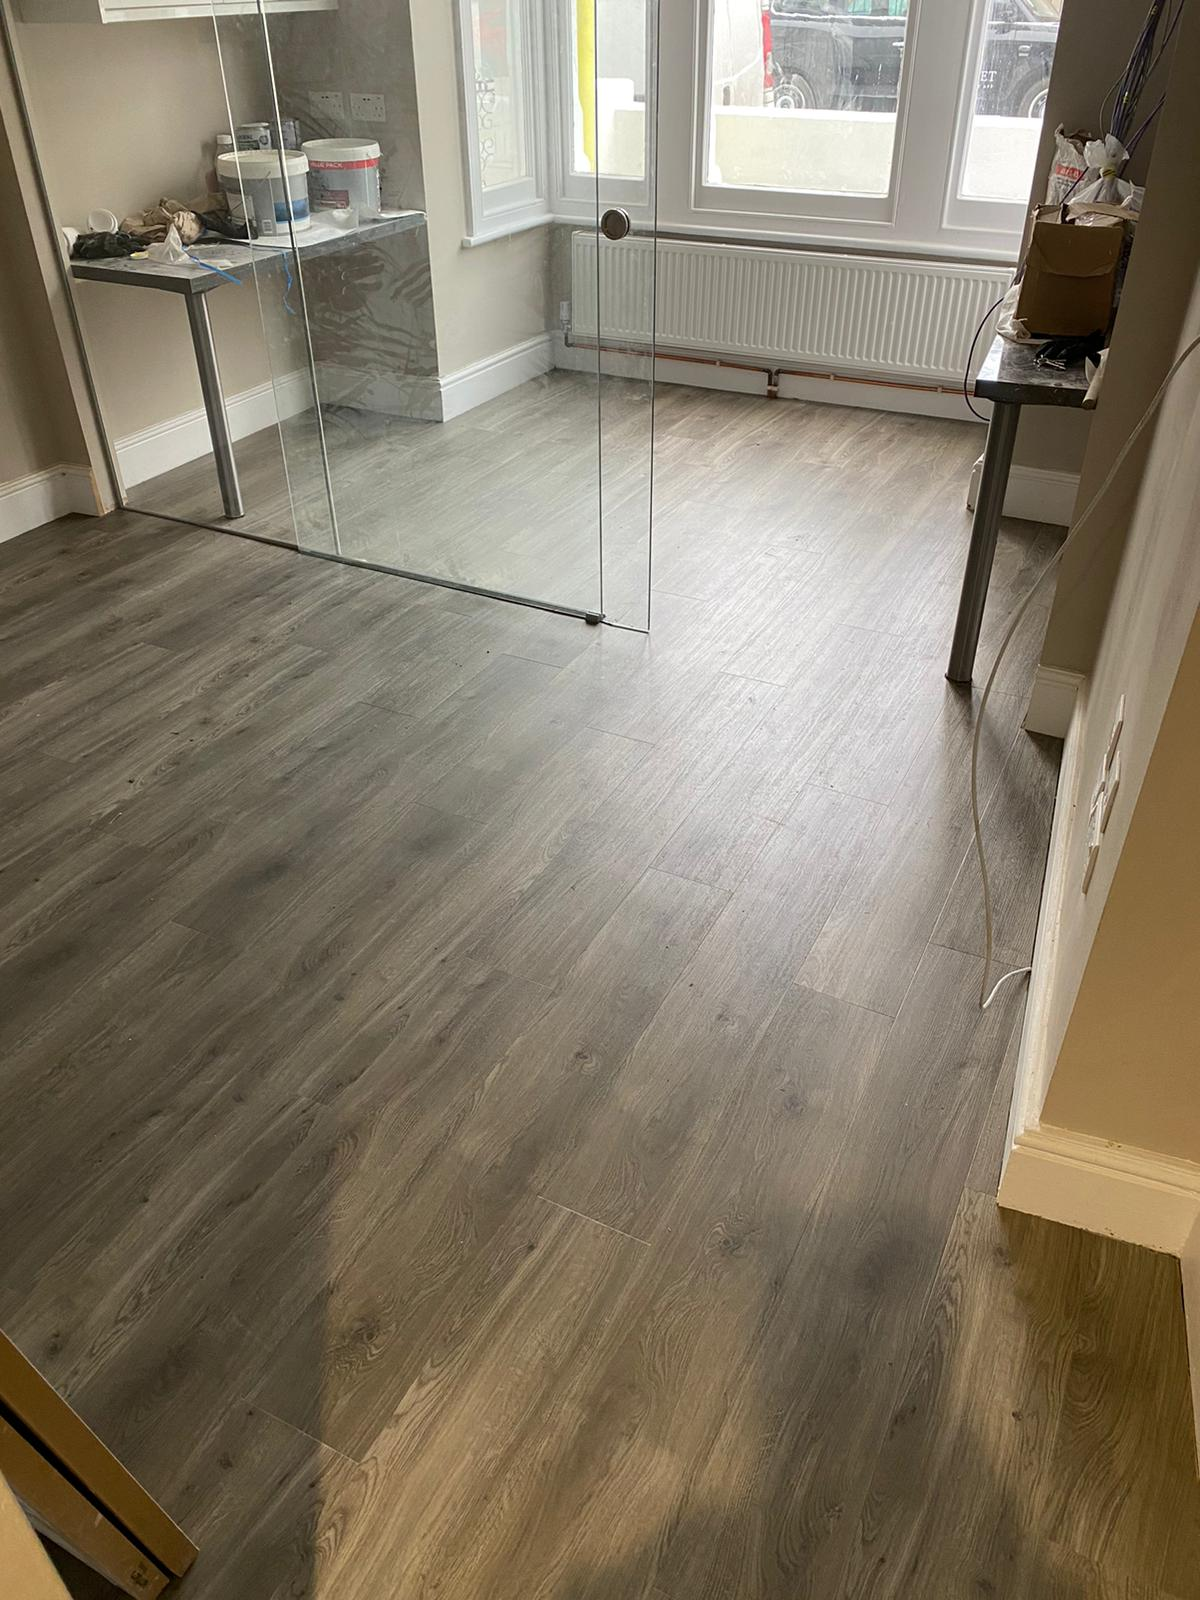 Amtico Spacia Weathered Oak Luxury Vinyl Flooring 4